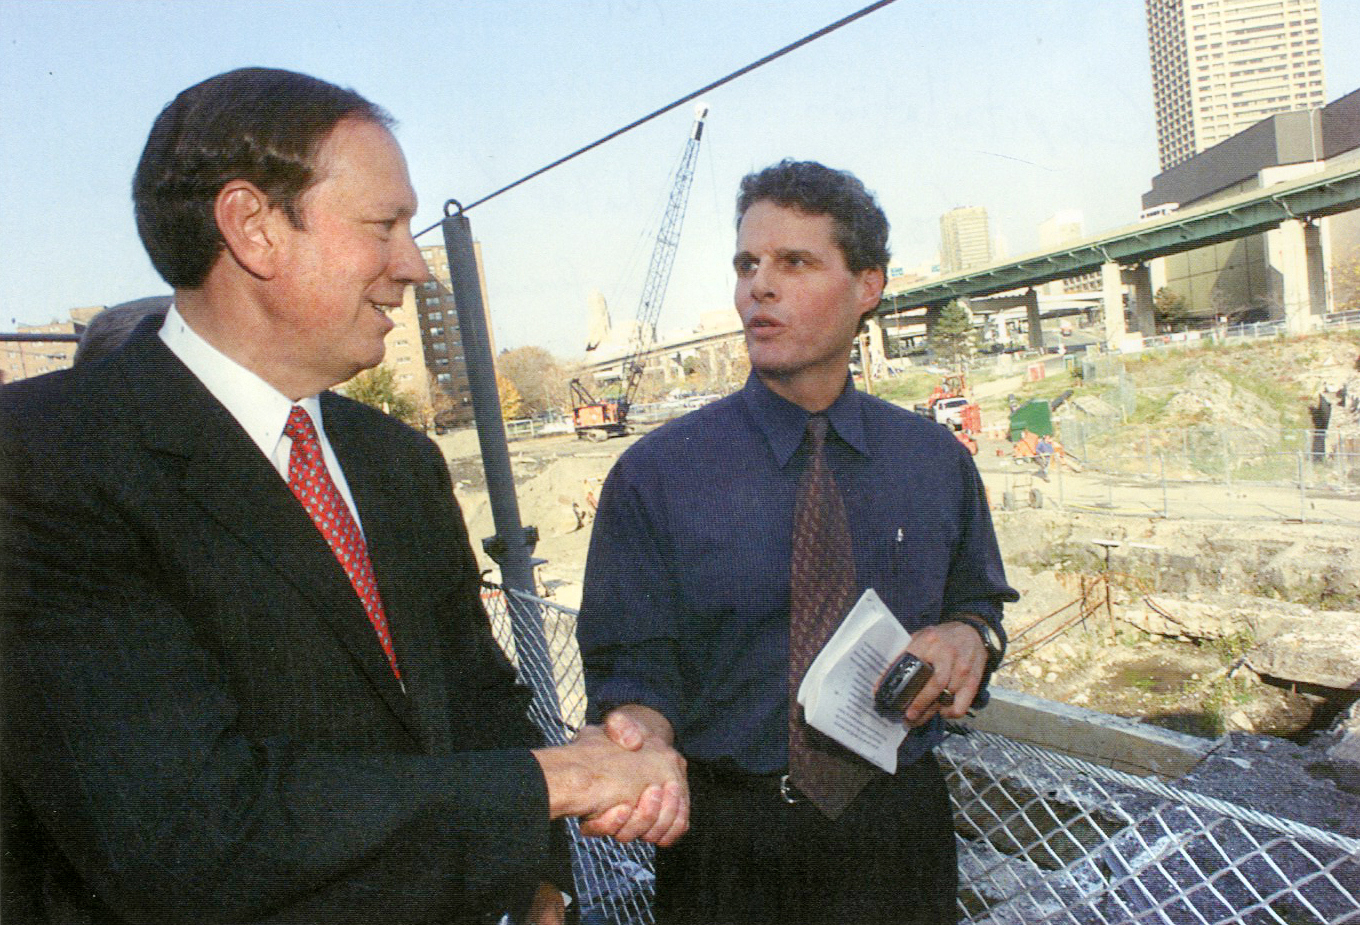 In this Oct. 27, 2000 file photo, Gov. Pataki shakes hands with Donn Esmonde after an Inner Harbor press conference announcing state had reversed course and would excavate and re-water the historic Commercial Slip, now the historic centerpiece of Canalside. Esmonde wrote 16 columns urging the Pataki-controlled state agency to change its plan to leave buried the Slip and surrounding building ruins. (Buffalo News file photo)